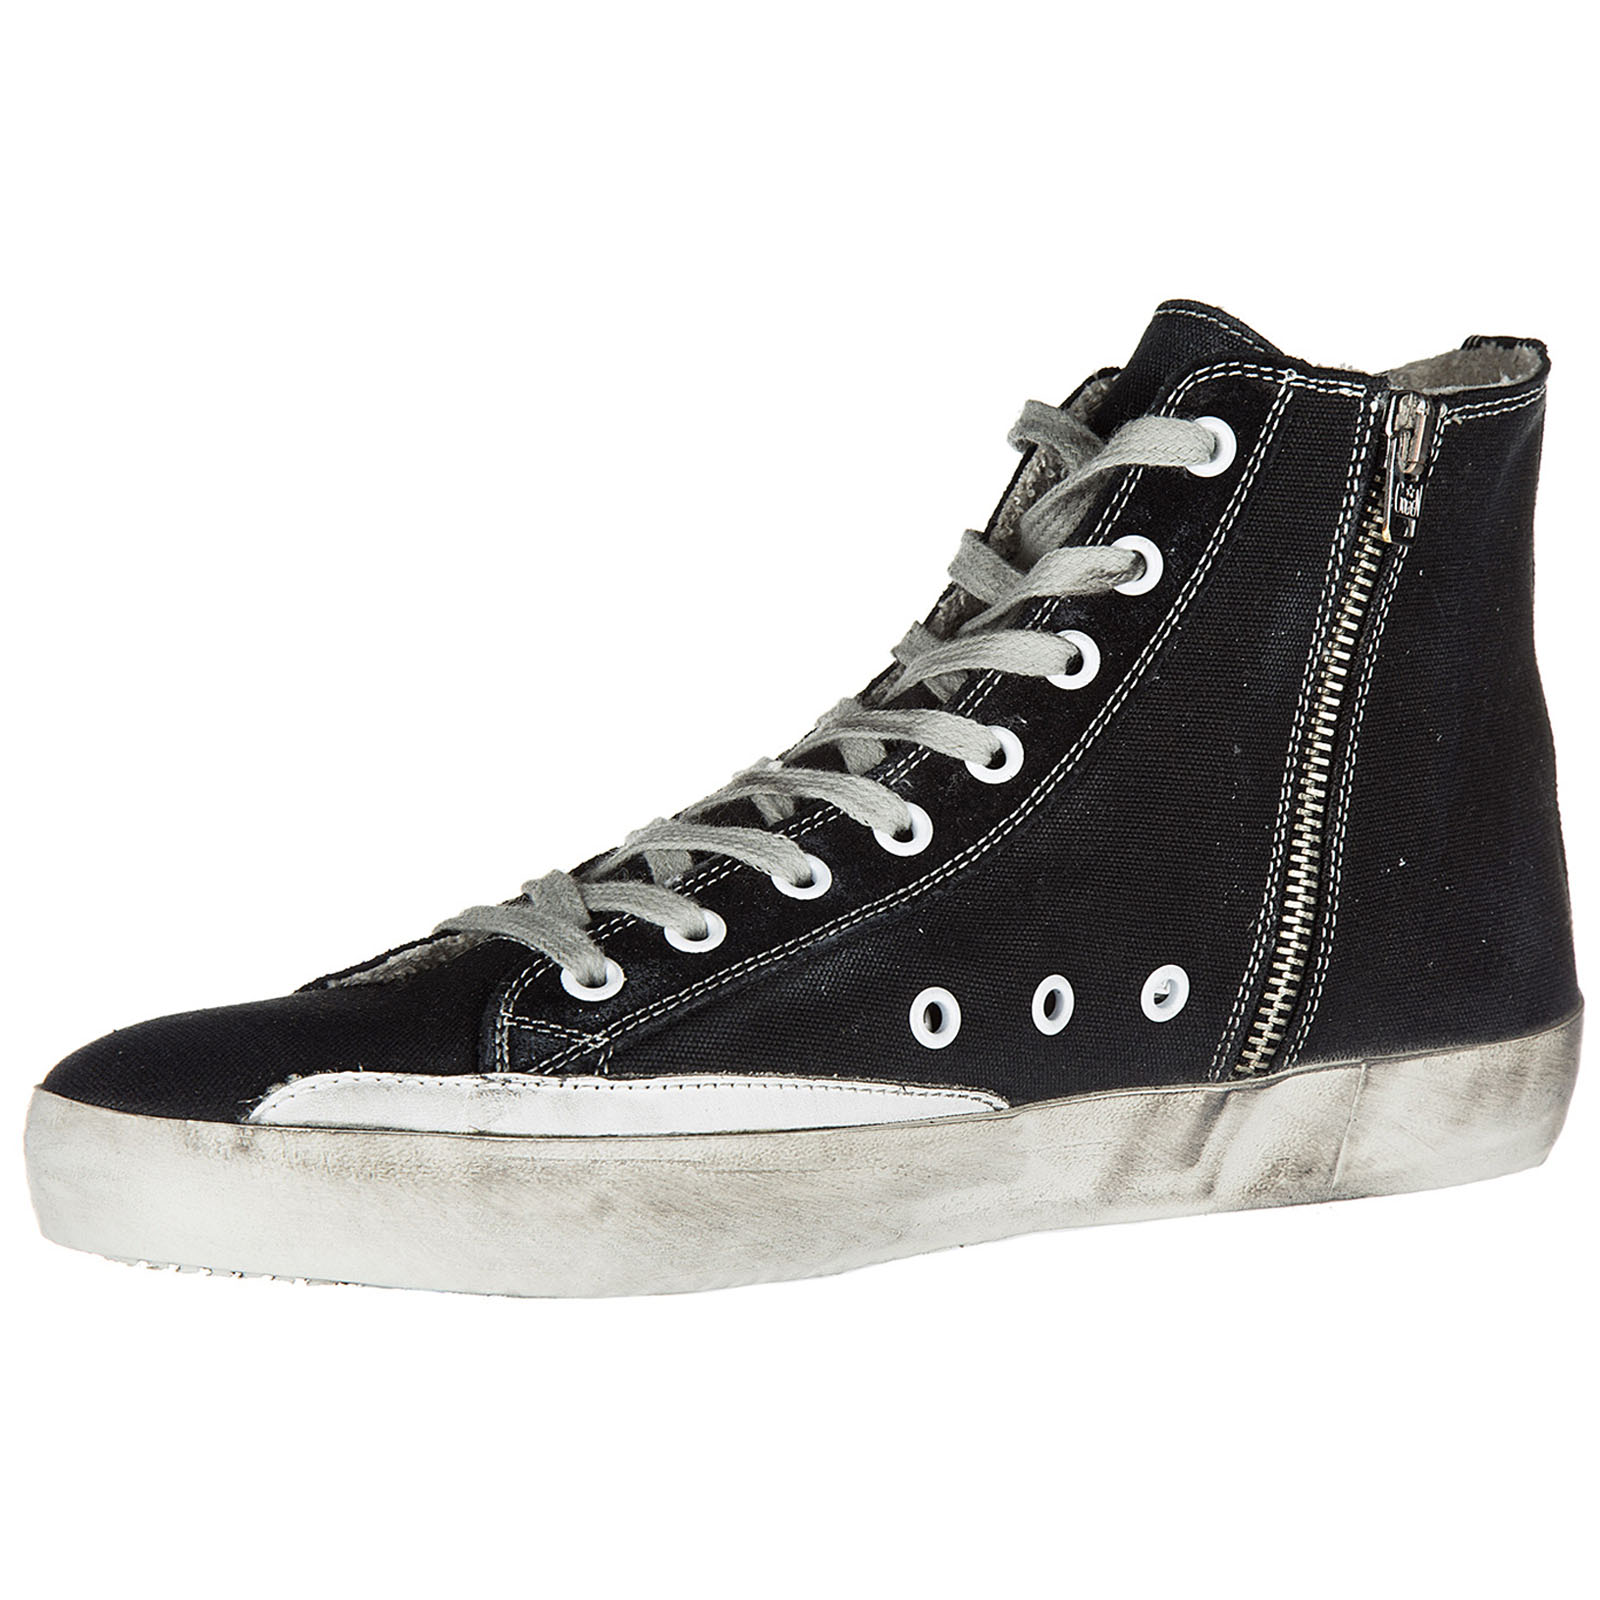 Men's shoes high top trainers sneakers francy